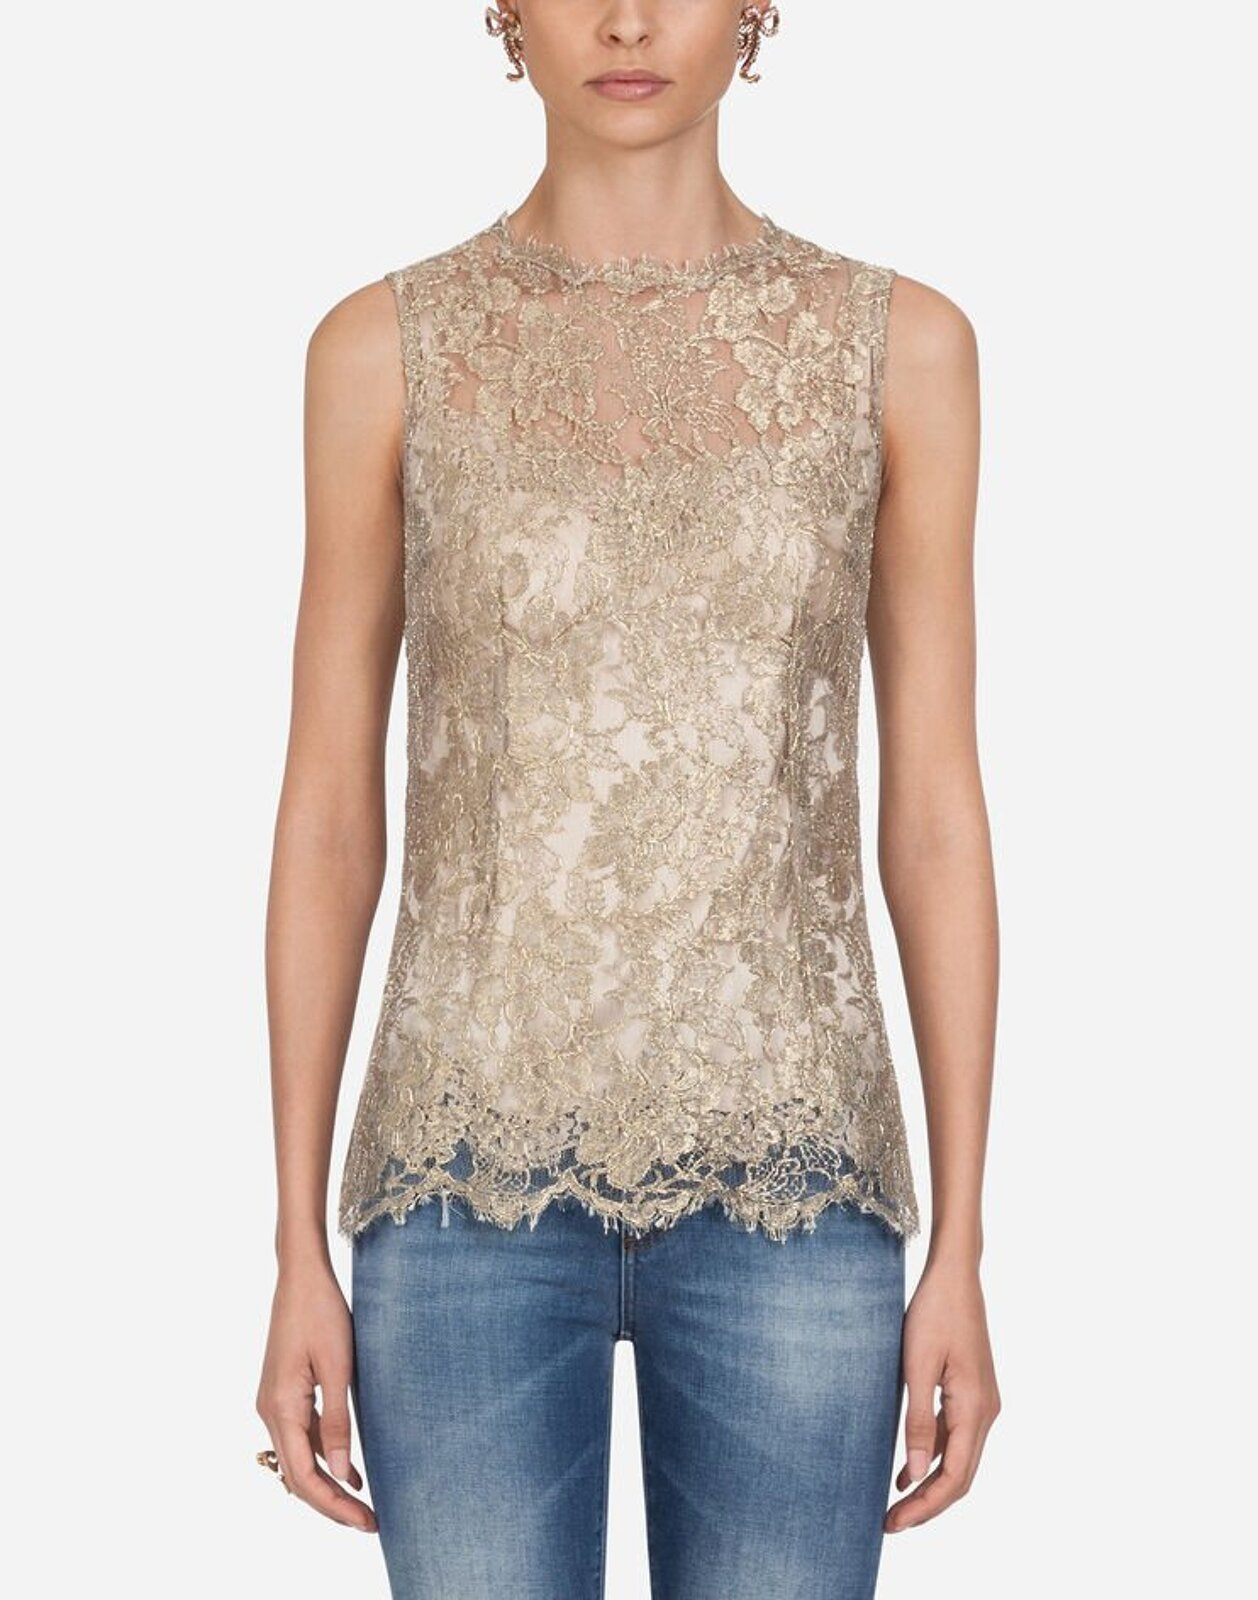 Top In Pizzo Chantilly Lamé - Dolce & Gabbana